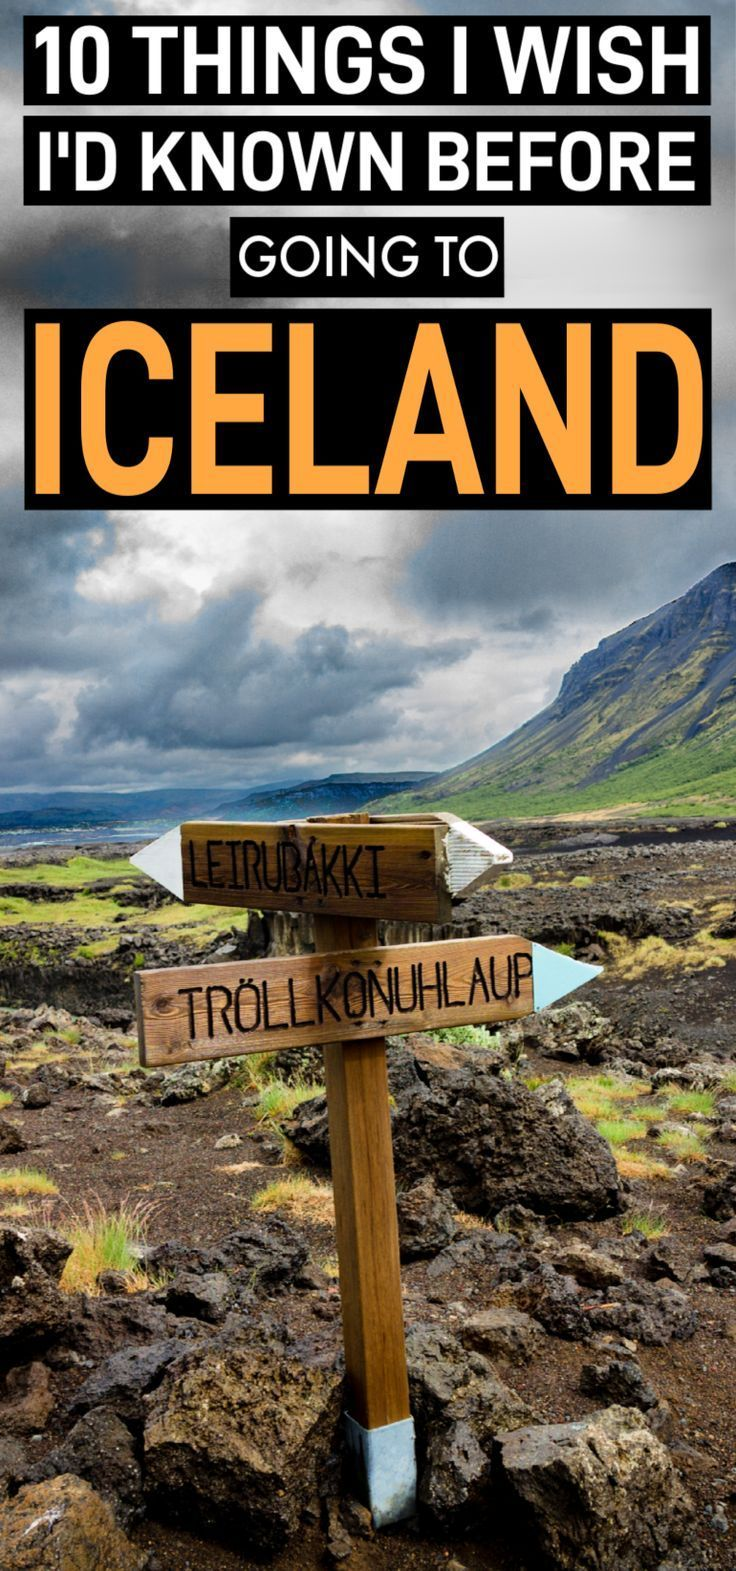 10 things I really wish I'd known before going to Iceland :/ #IcelandTrip #IcelandTravel #Iceland #IcelandVacation #IcelandTravelTips #IcelandTips